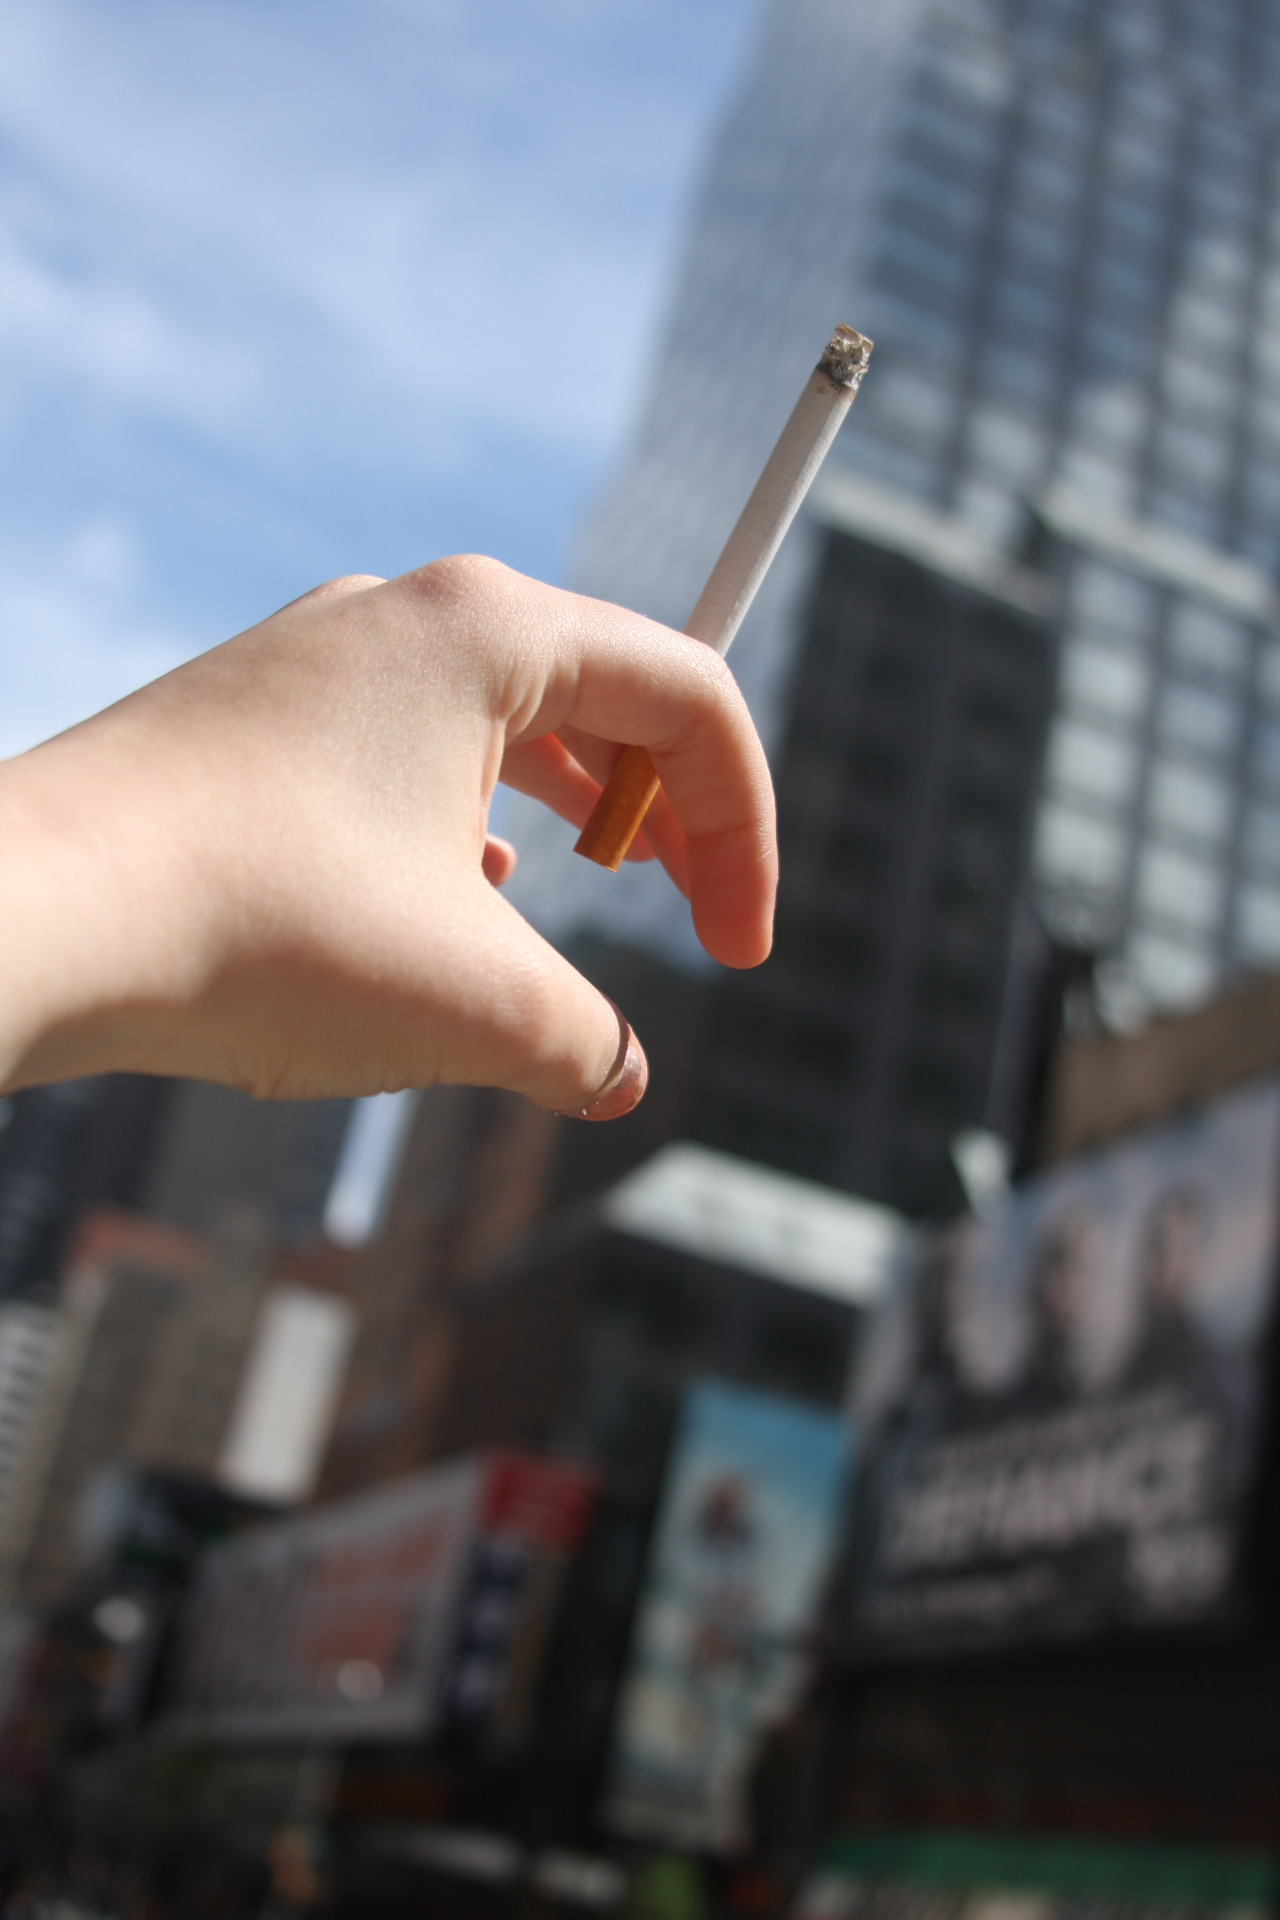 cigarette smoking in new yawk